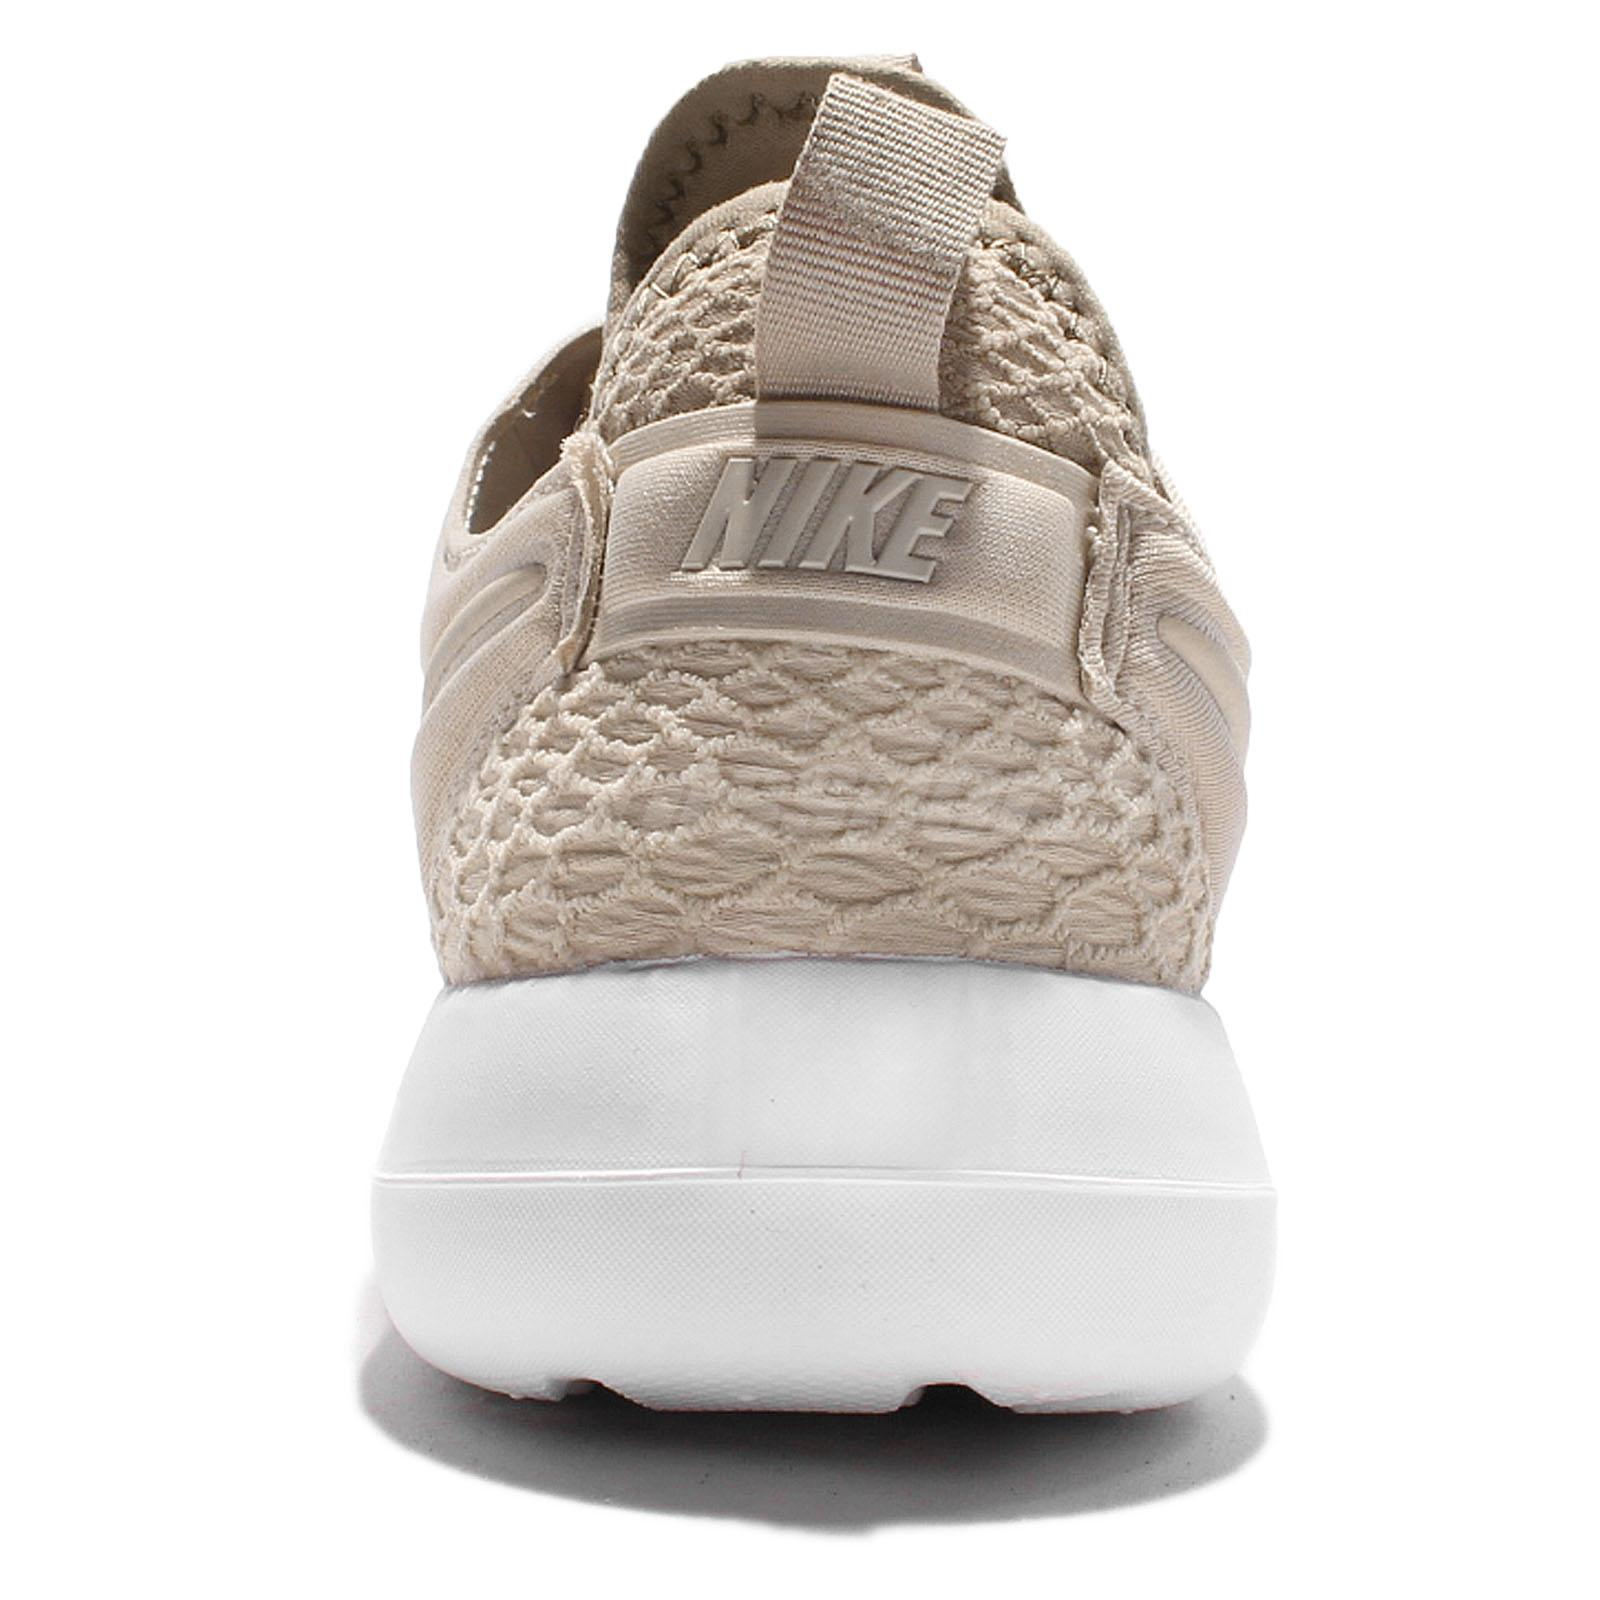 Roshe Two Si Sneaker (Women) Embroidery, The o 'jays and